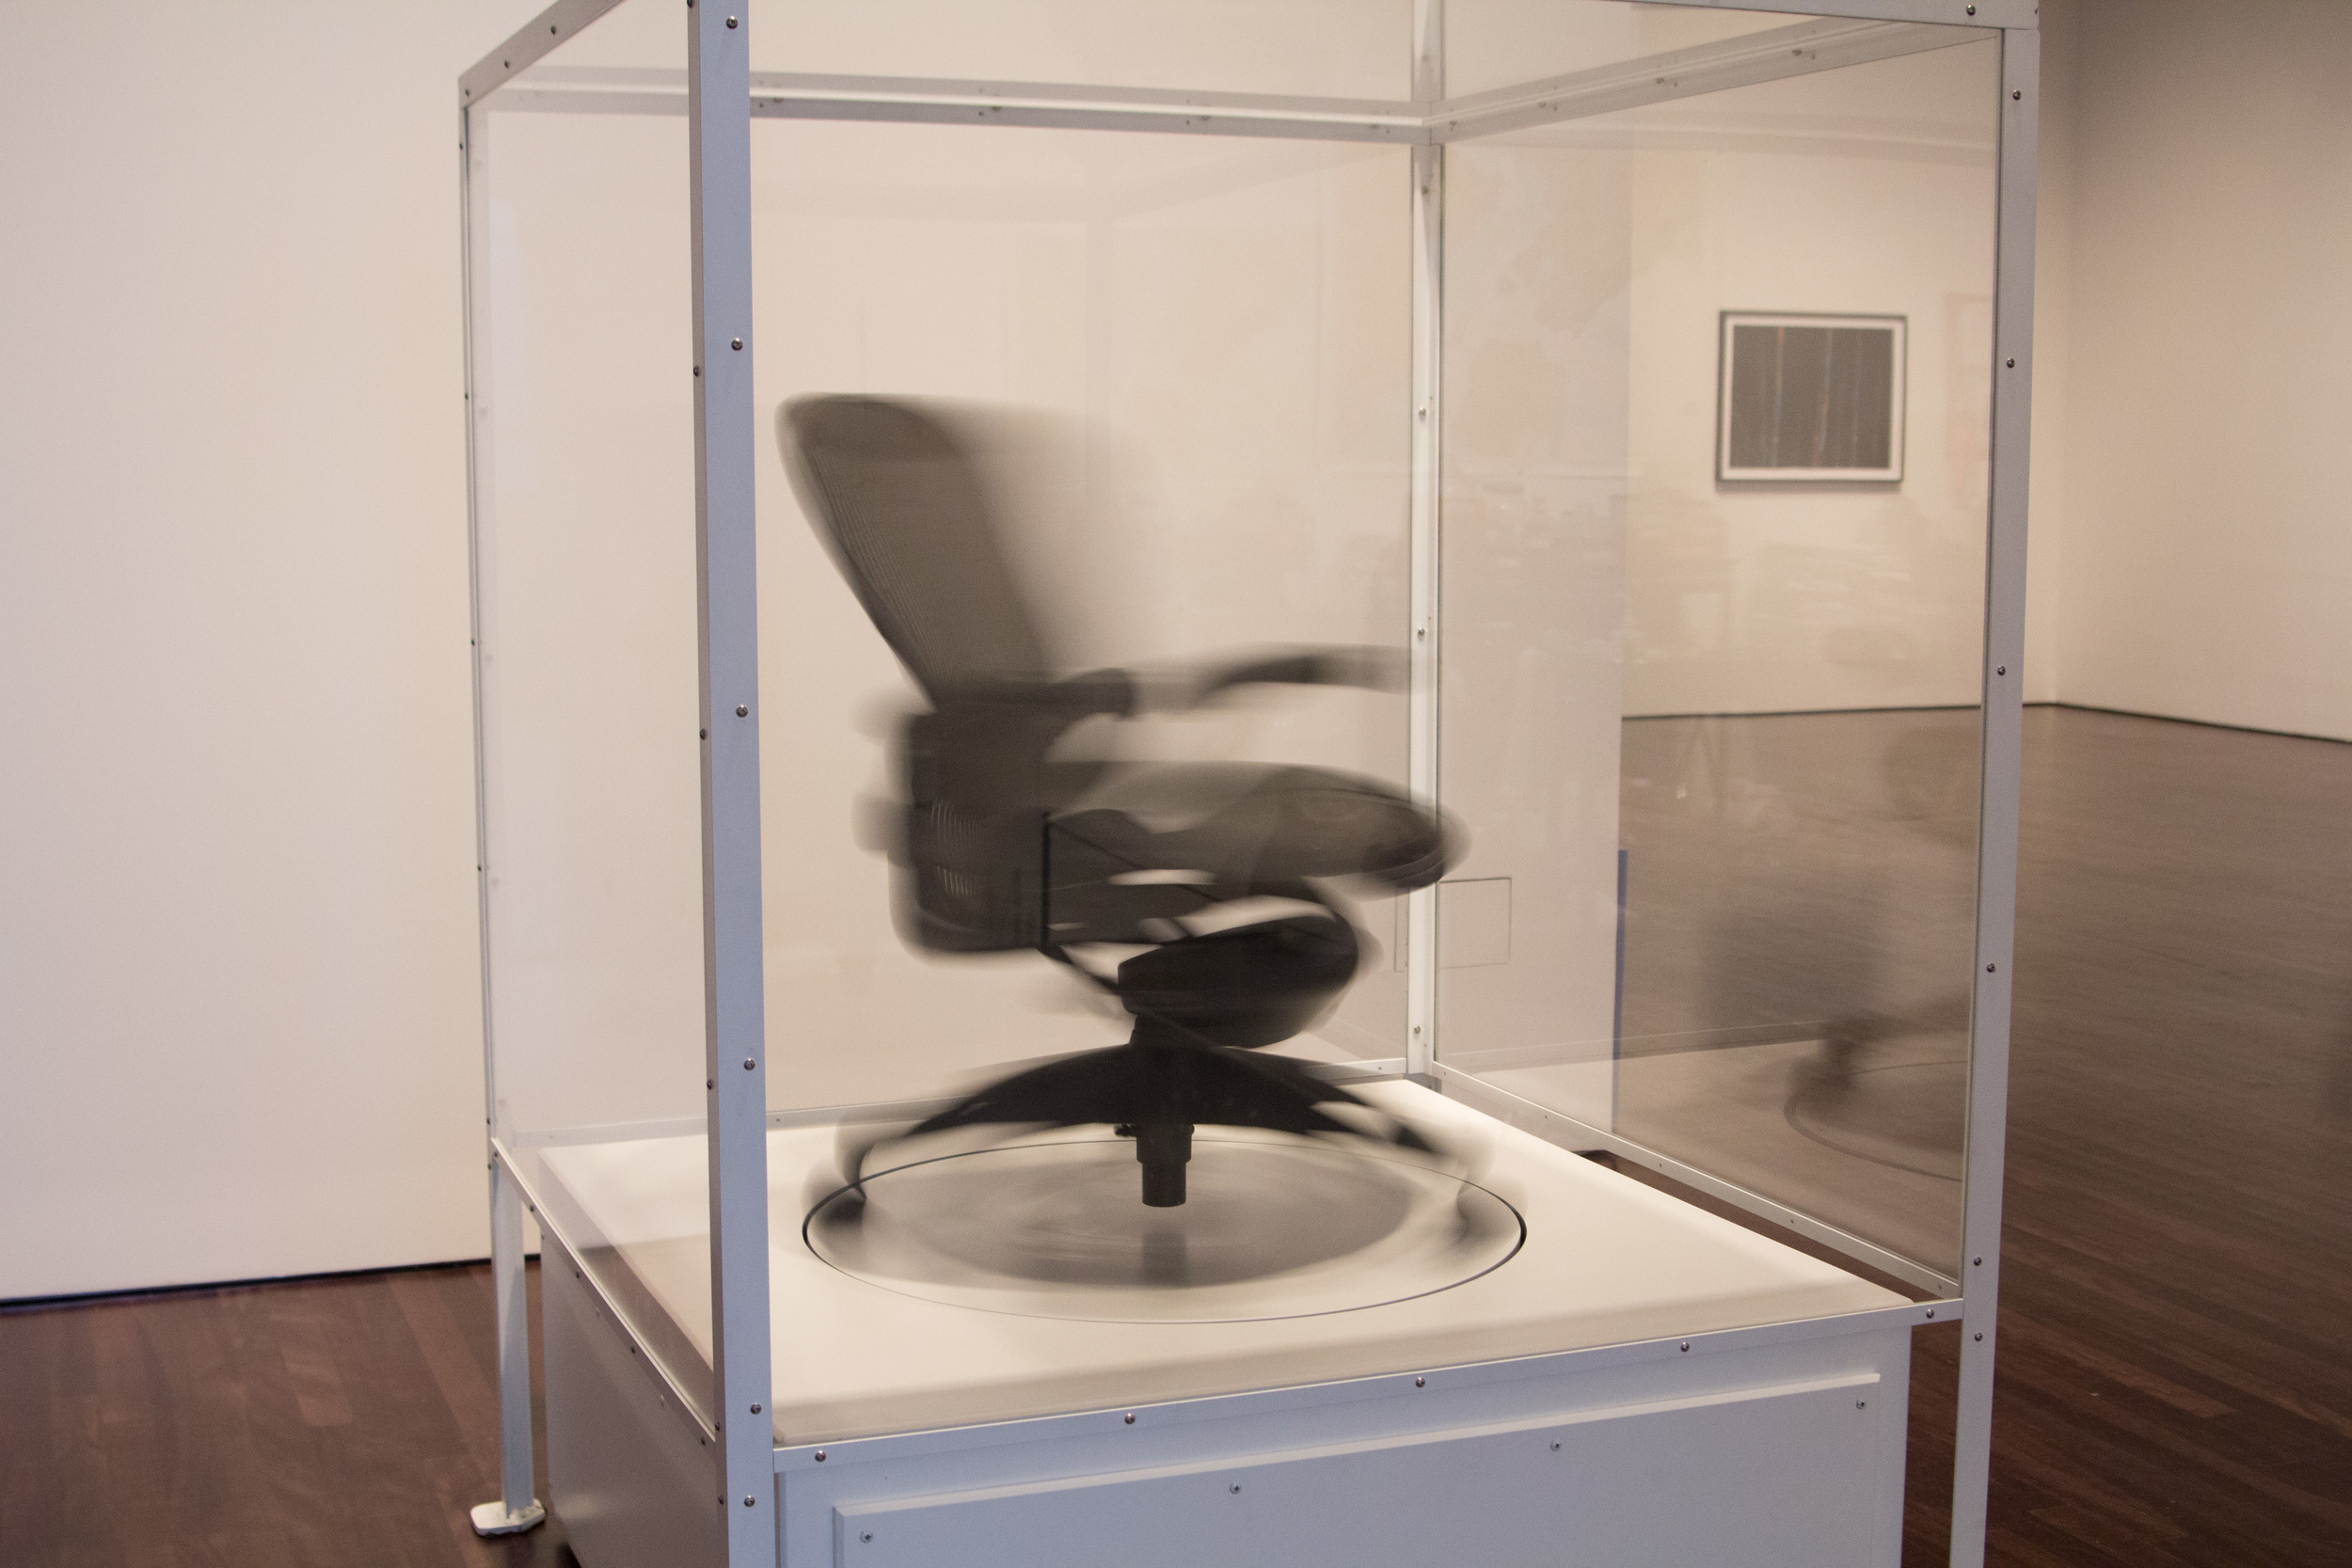 """""""The Siege Perilous,"""" a spinning chair installation by Glenn Kaino"""